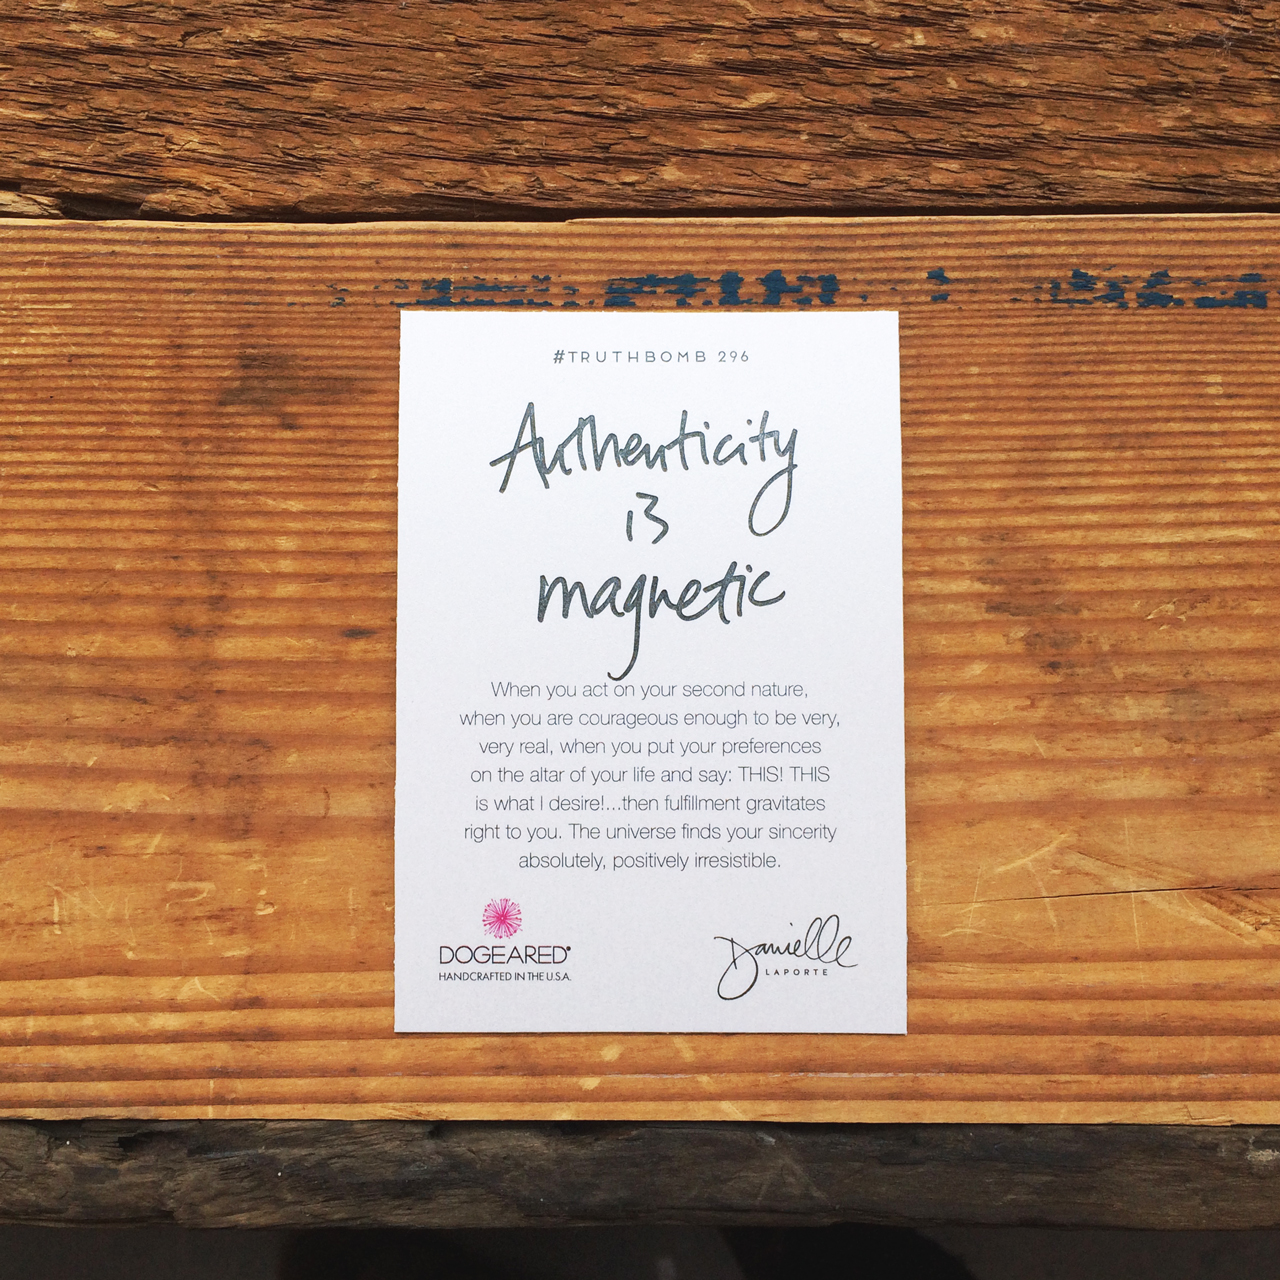 authenticity-is-magnetic